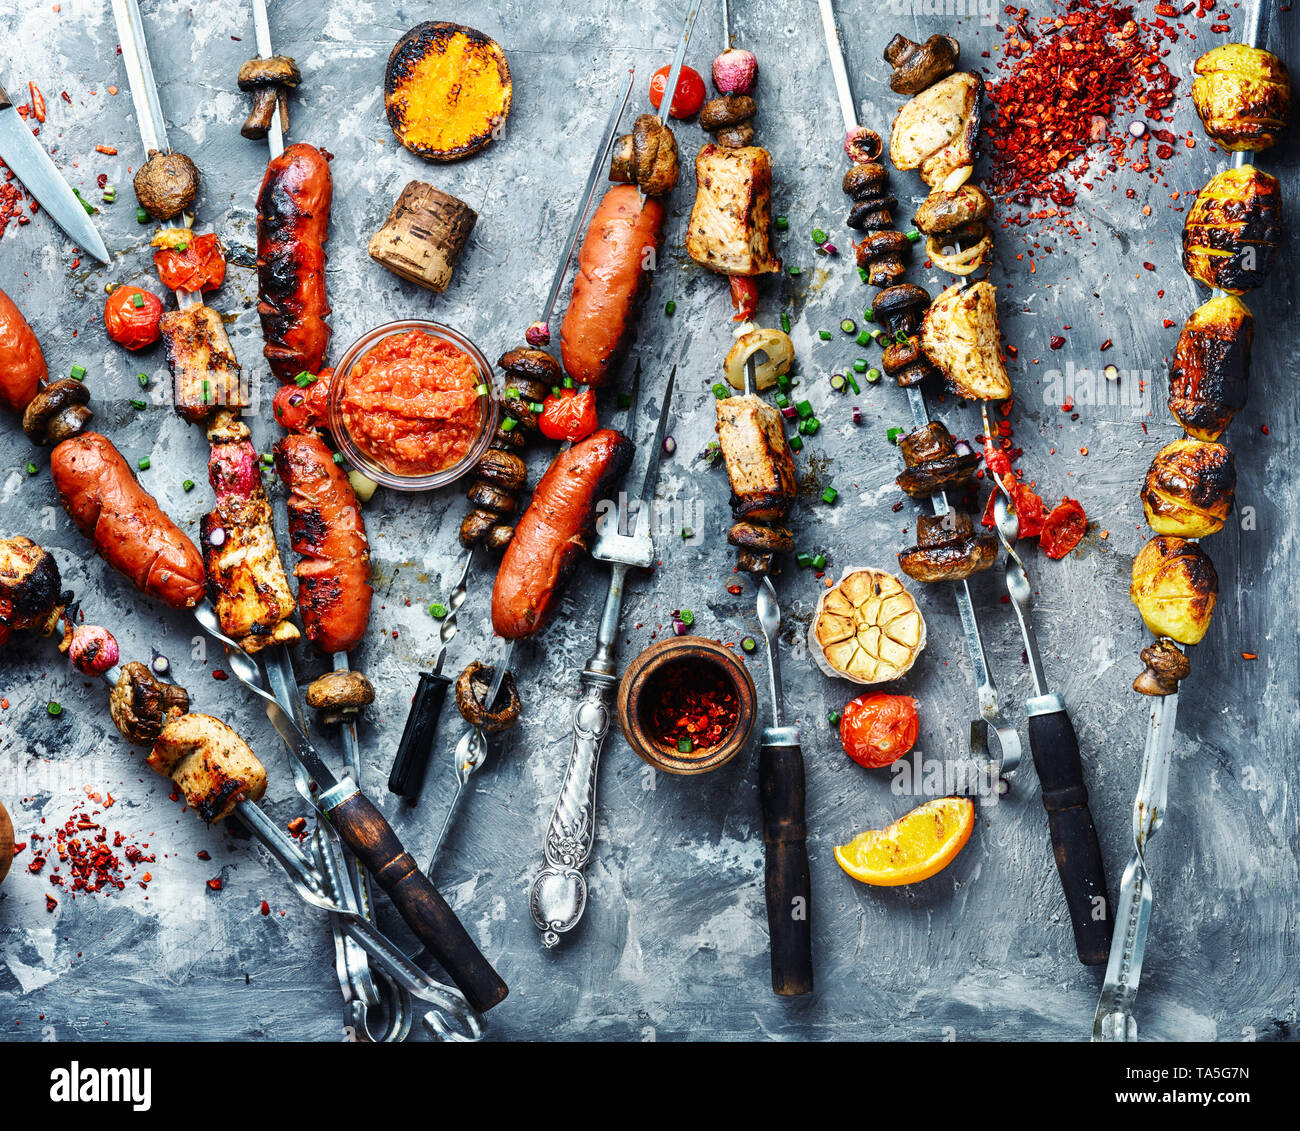 Set of grilled dishes, kebabs, sausages and grilled vegetables.Fast food. Eastern food - Stock Image